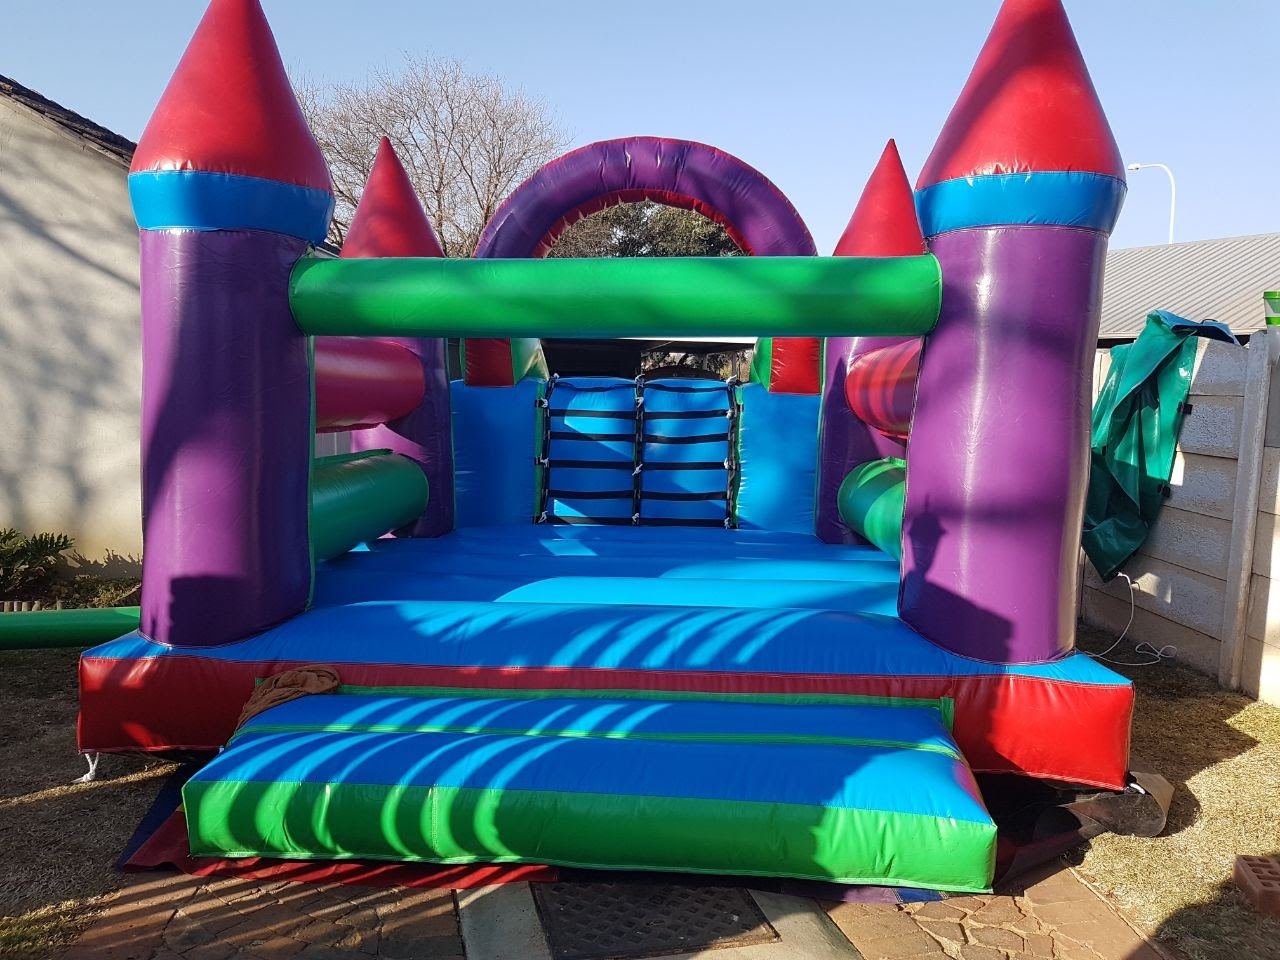 Funstation R550 (4m x 7m) View 1